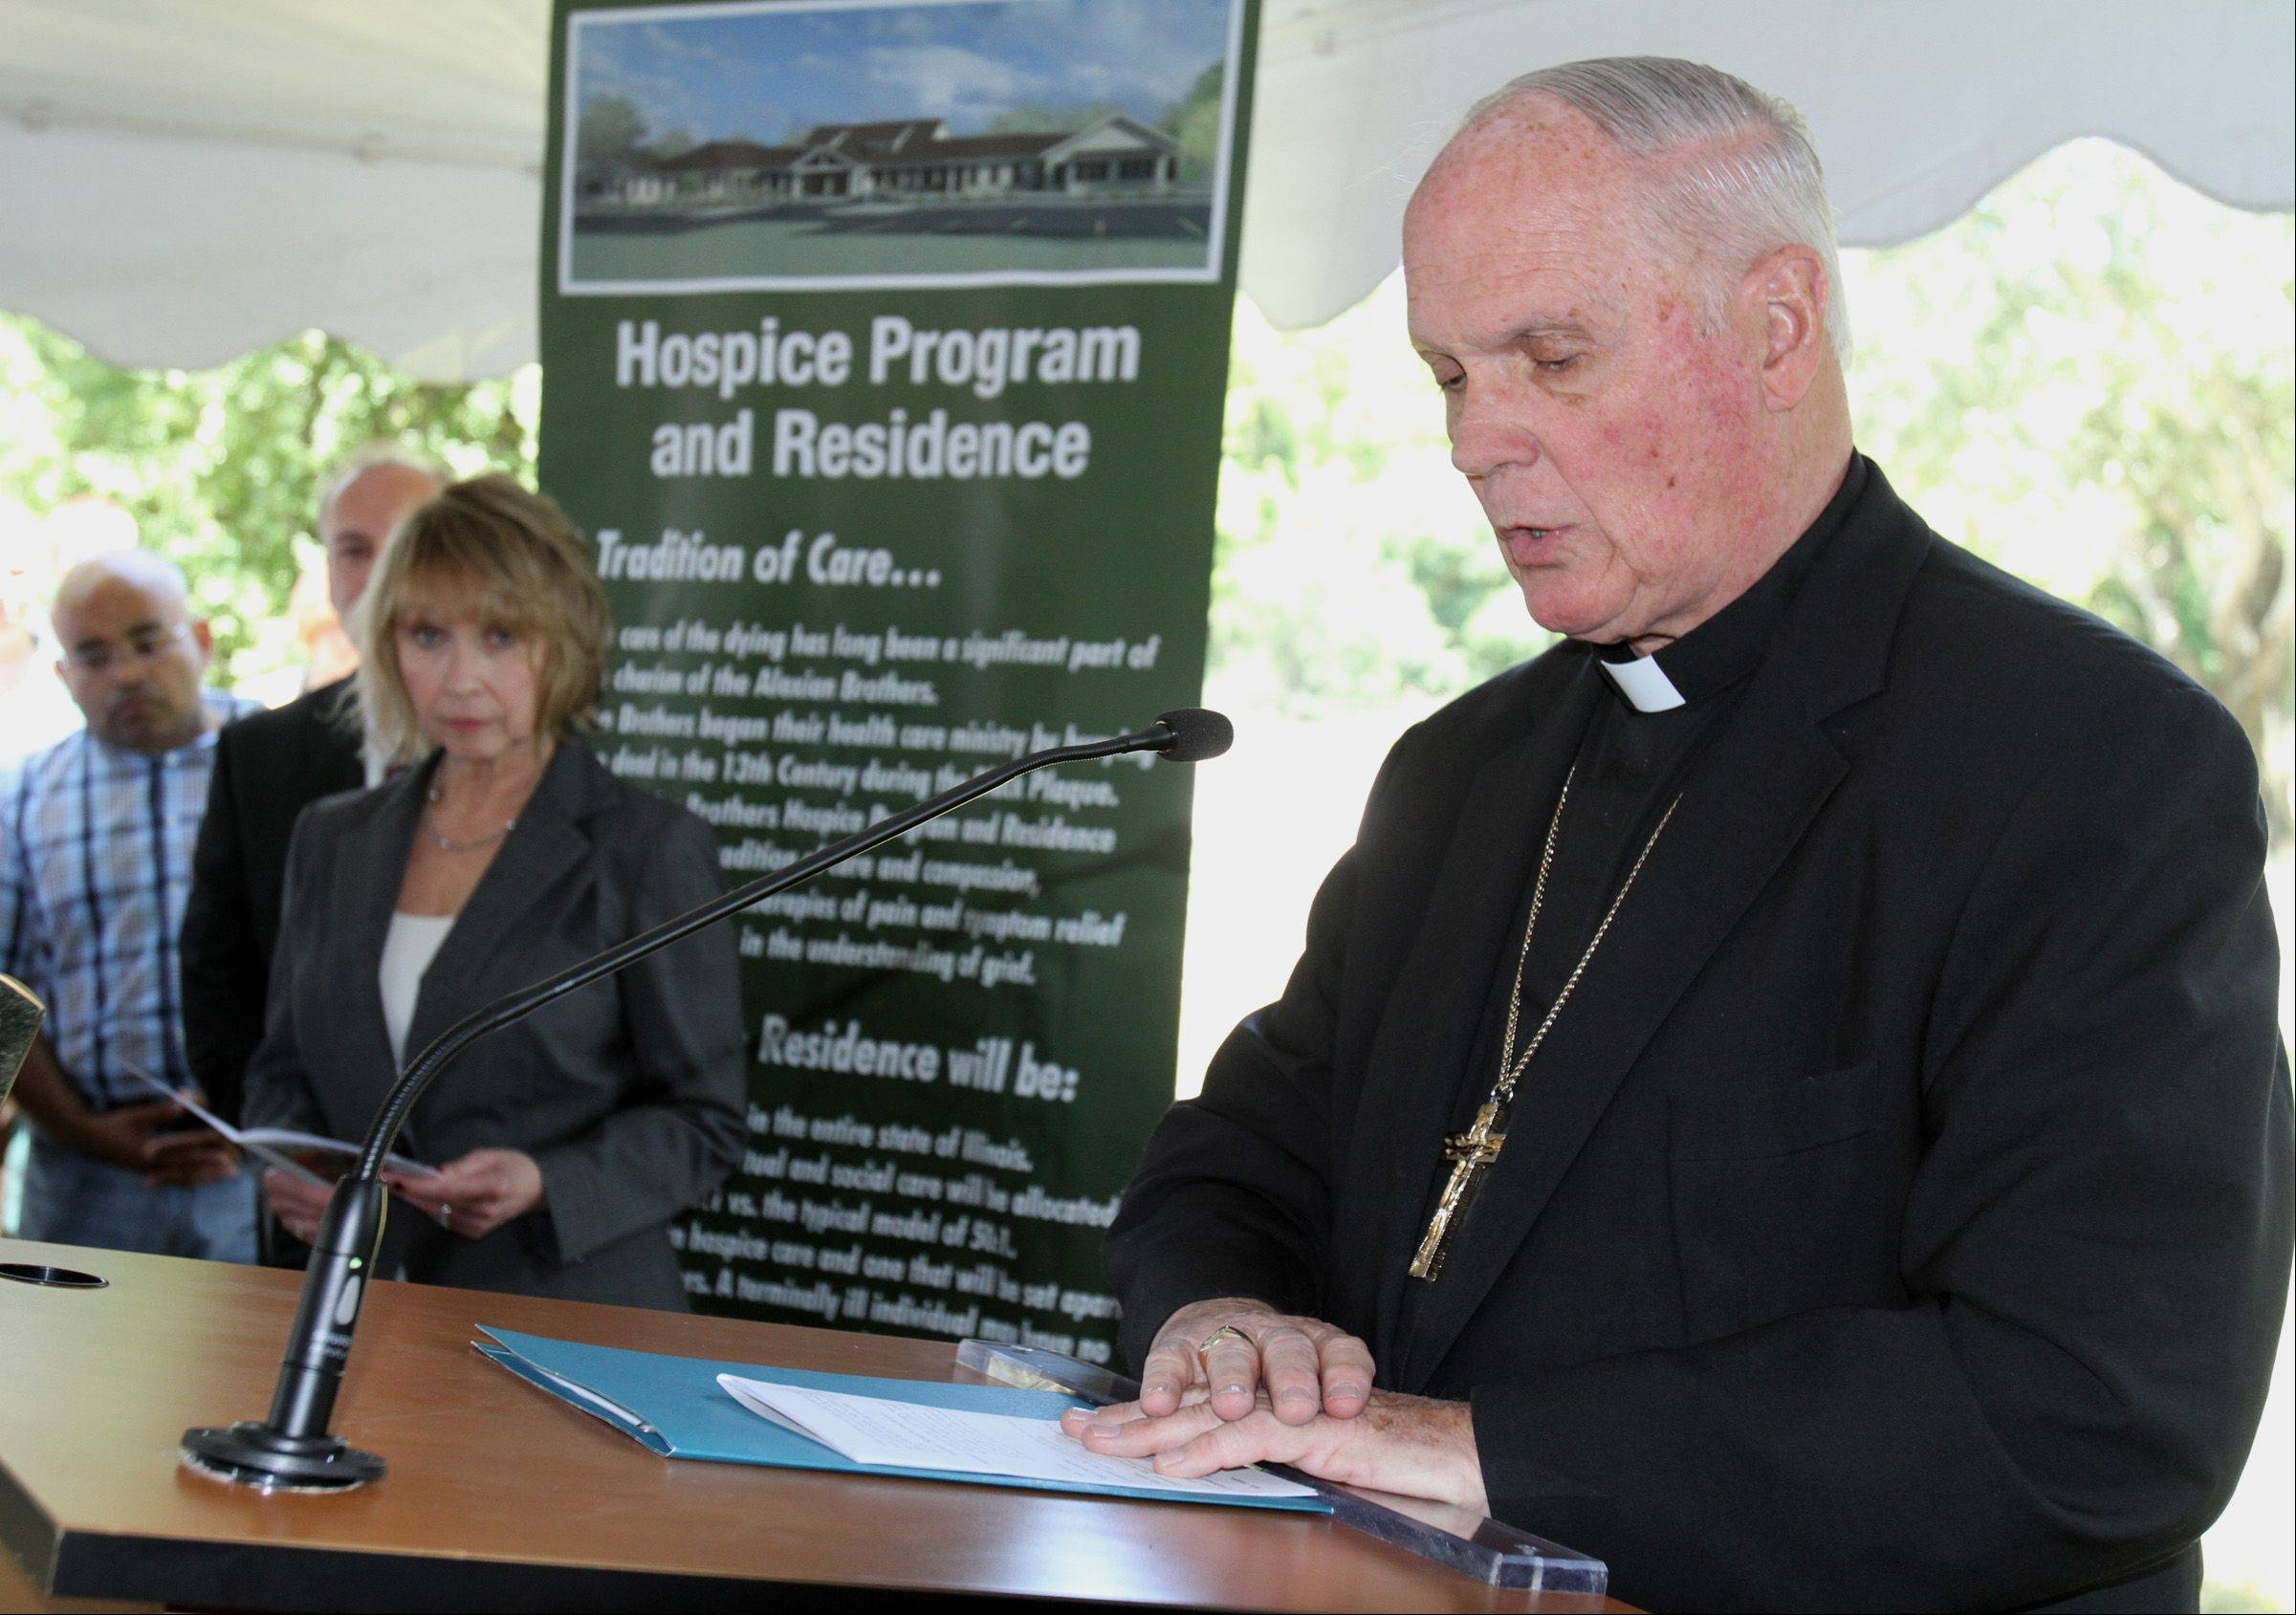 Most Reverend George Rassas Auxiliary Bishop of Chicago says a prayer at Alexian Brothers Health System hospice center groundbreaking.